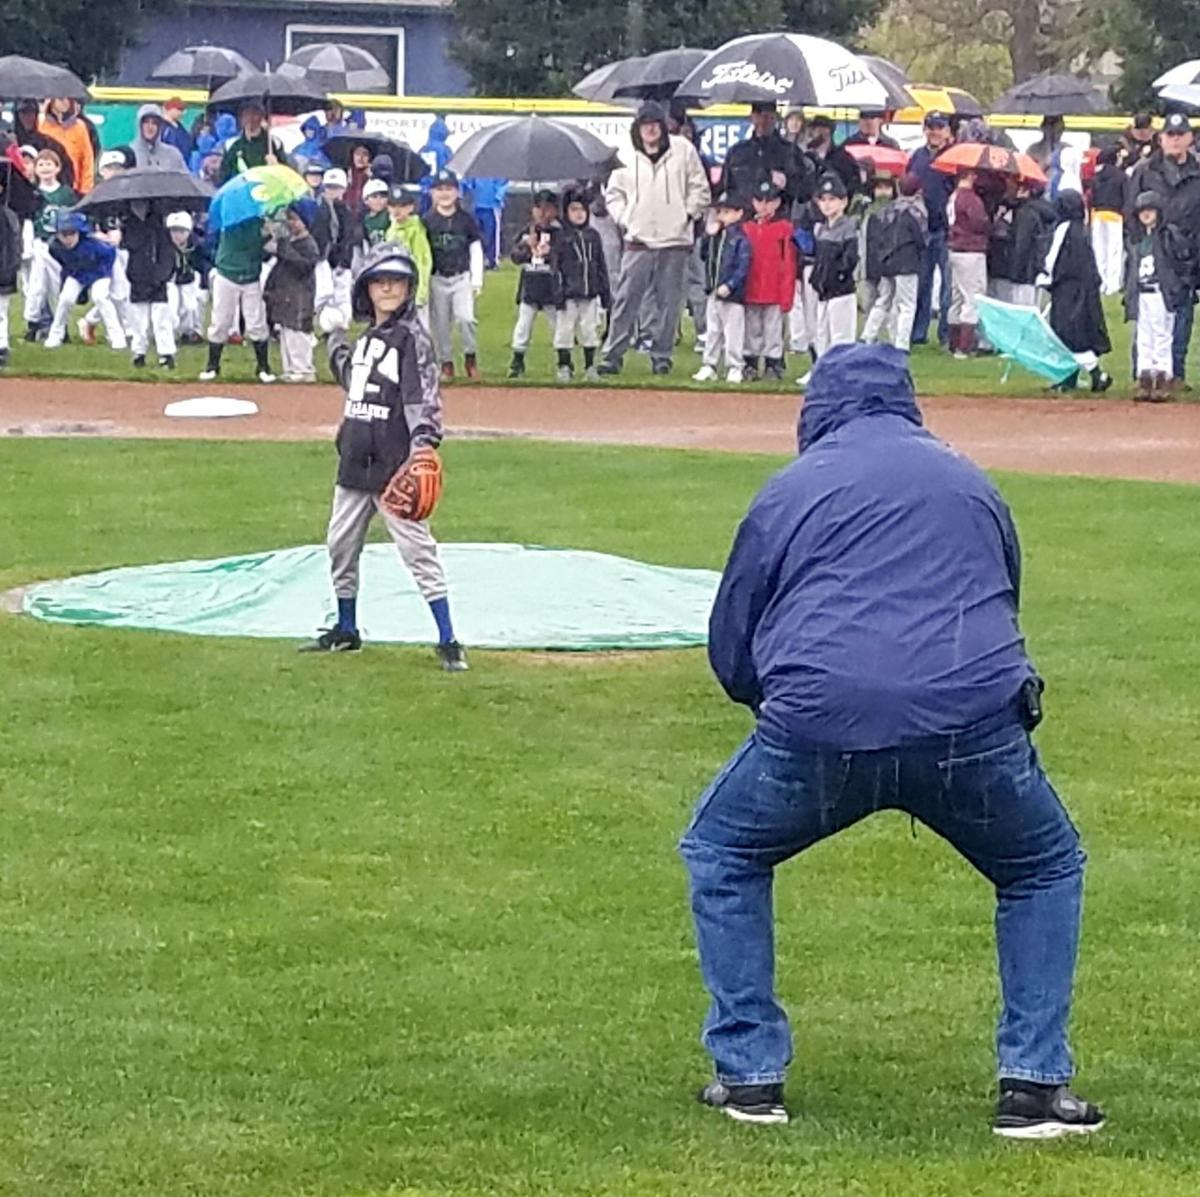 Napa Little League Opening Day